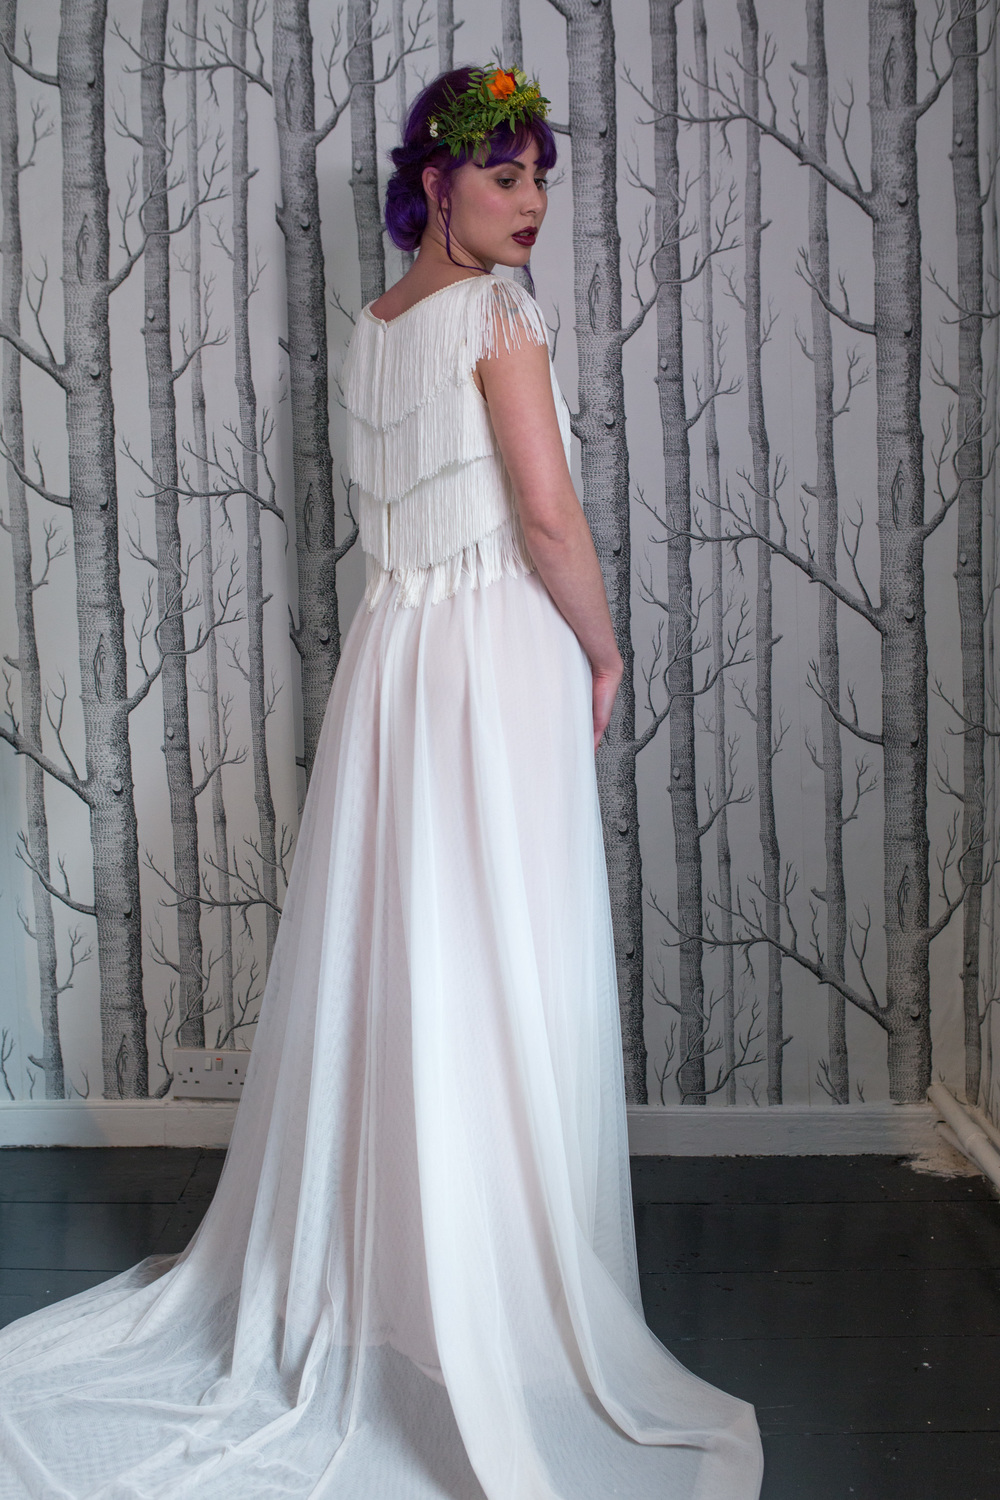 960236e337954f Beautiful, quirky & bespoke bridal wear from Lucy Can't Dance - UK ...